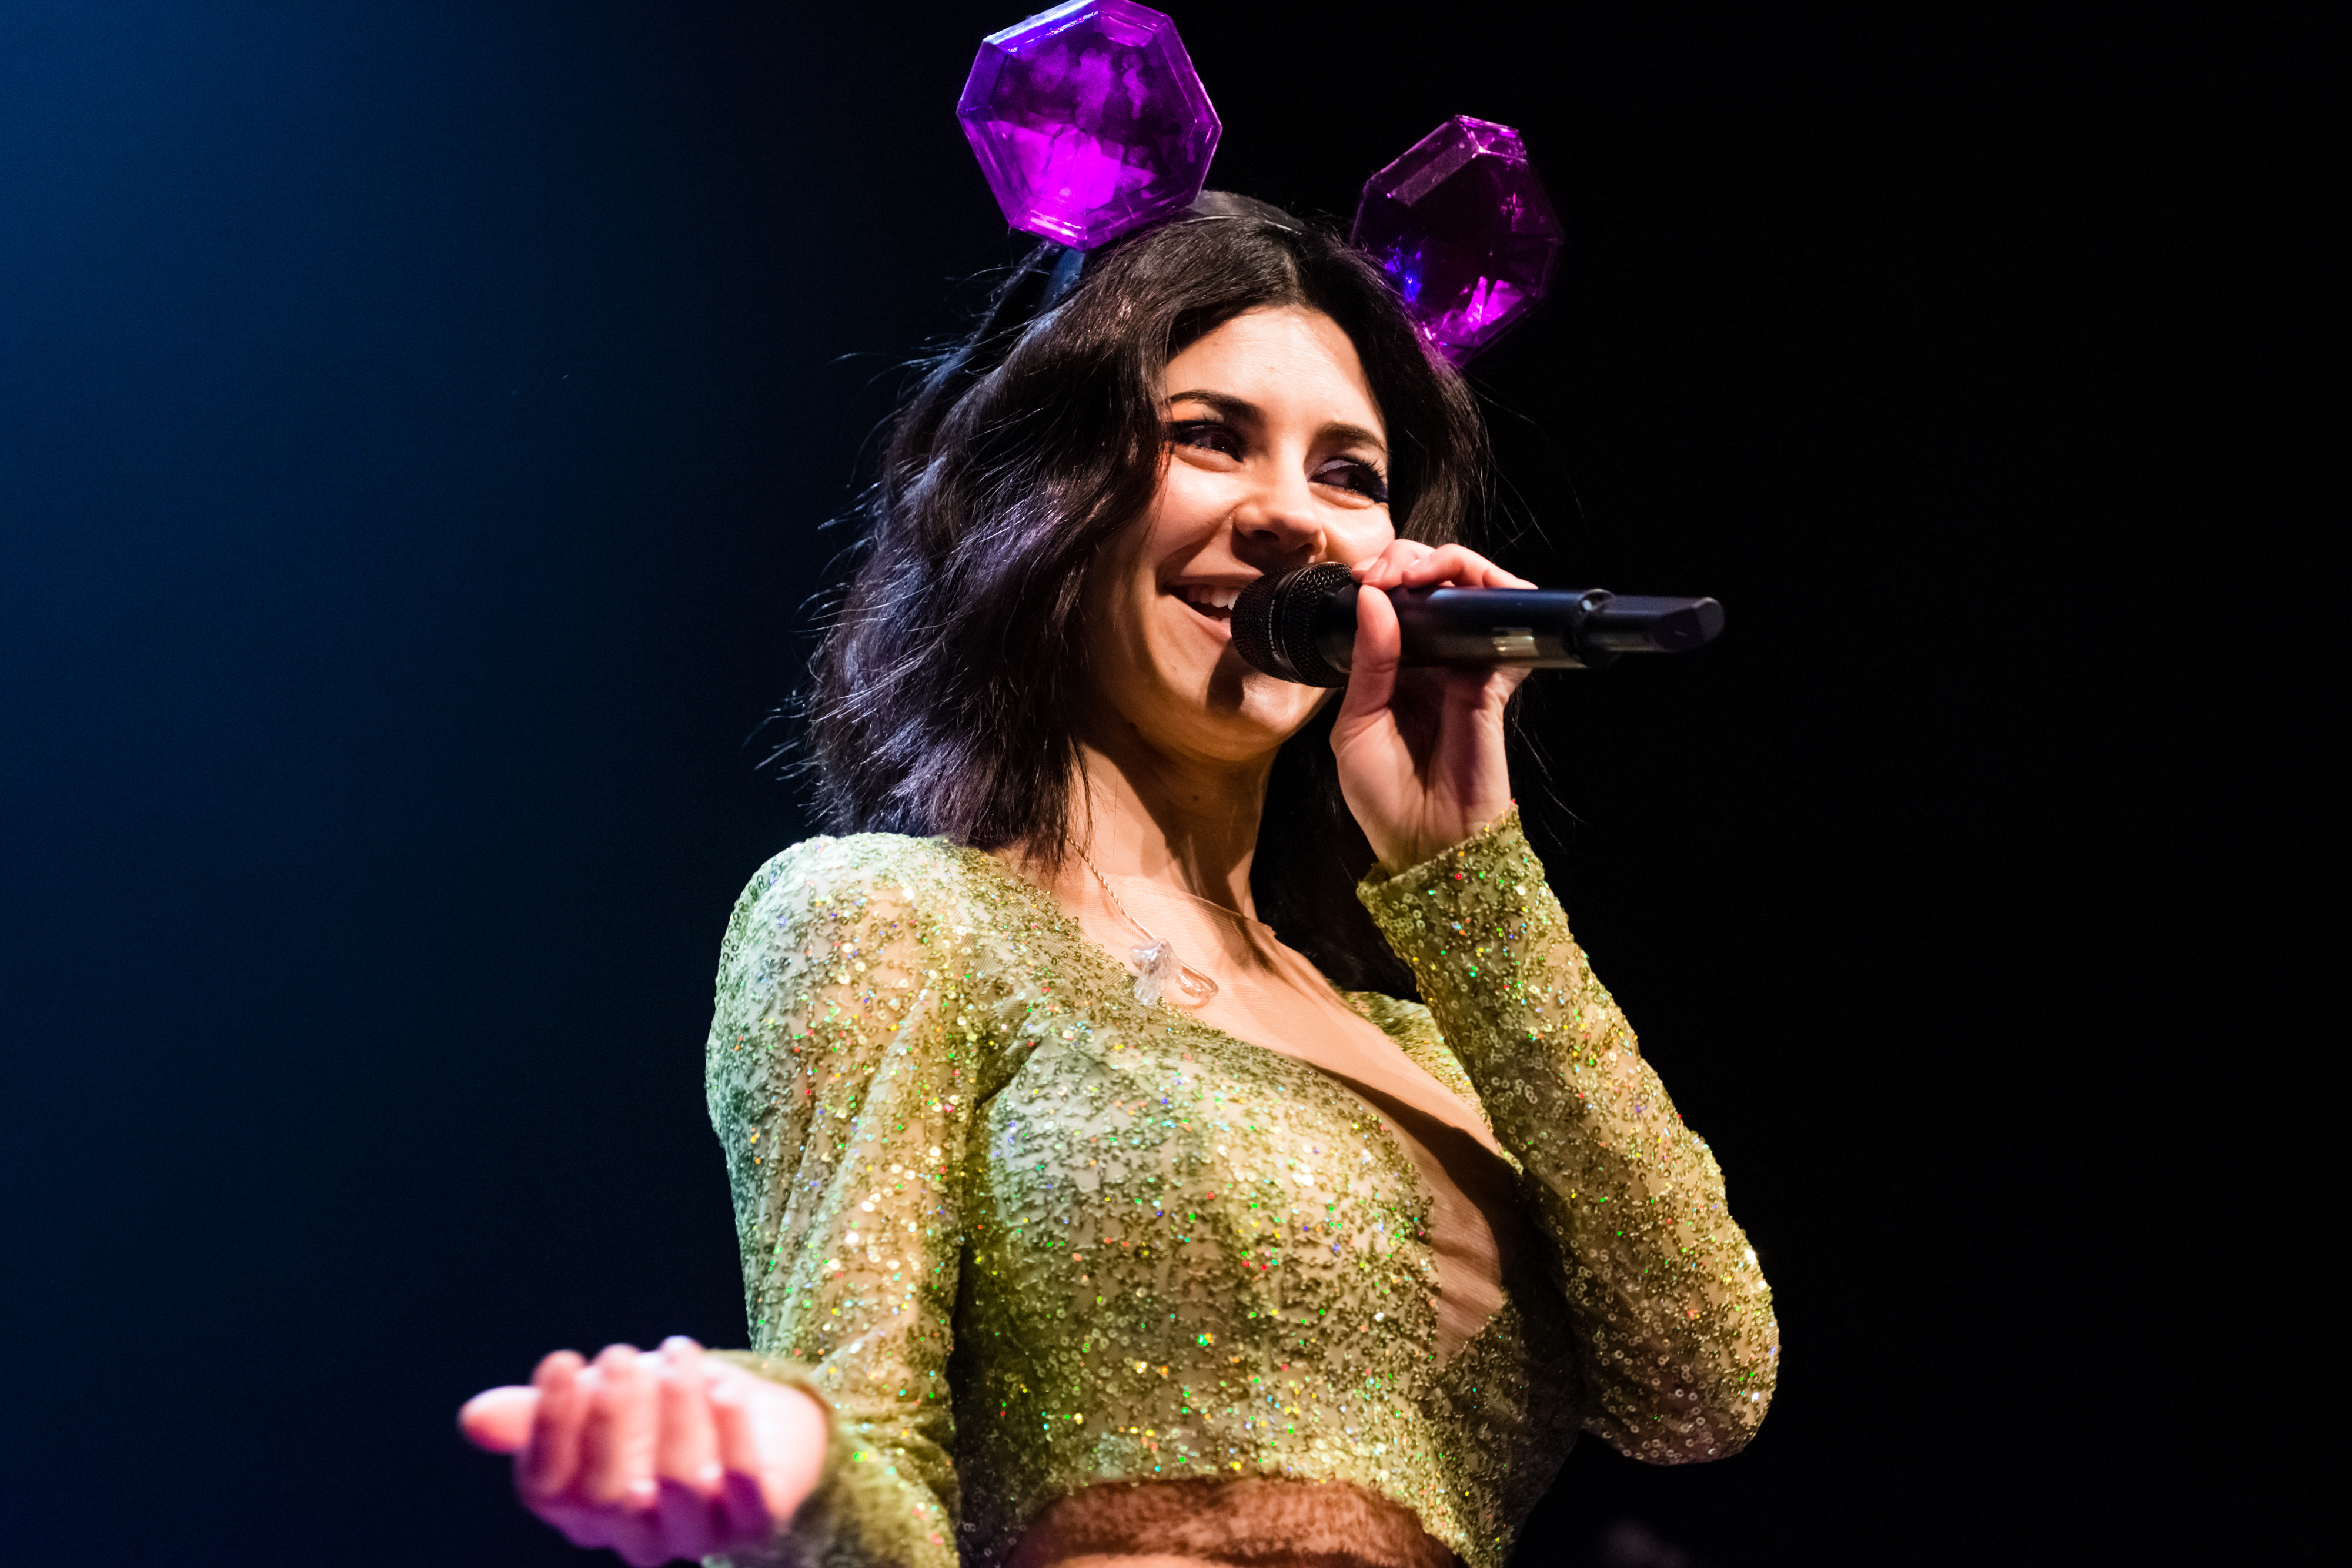 Marina and the Diamonds performs on Feb. 26, 2016 in The Hague, Netherlands.